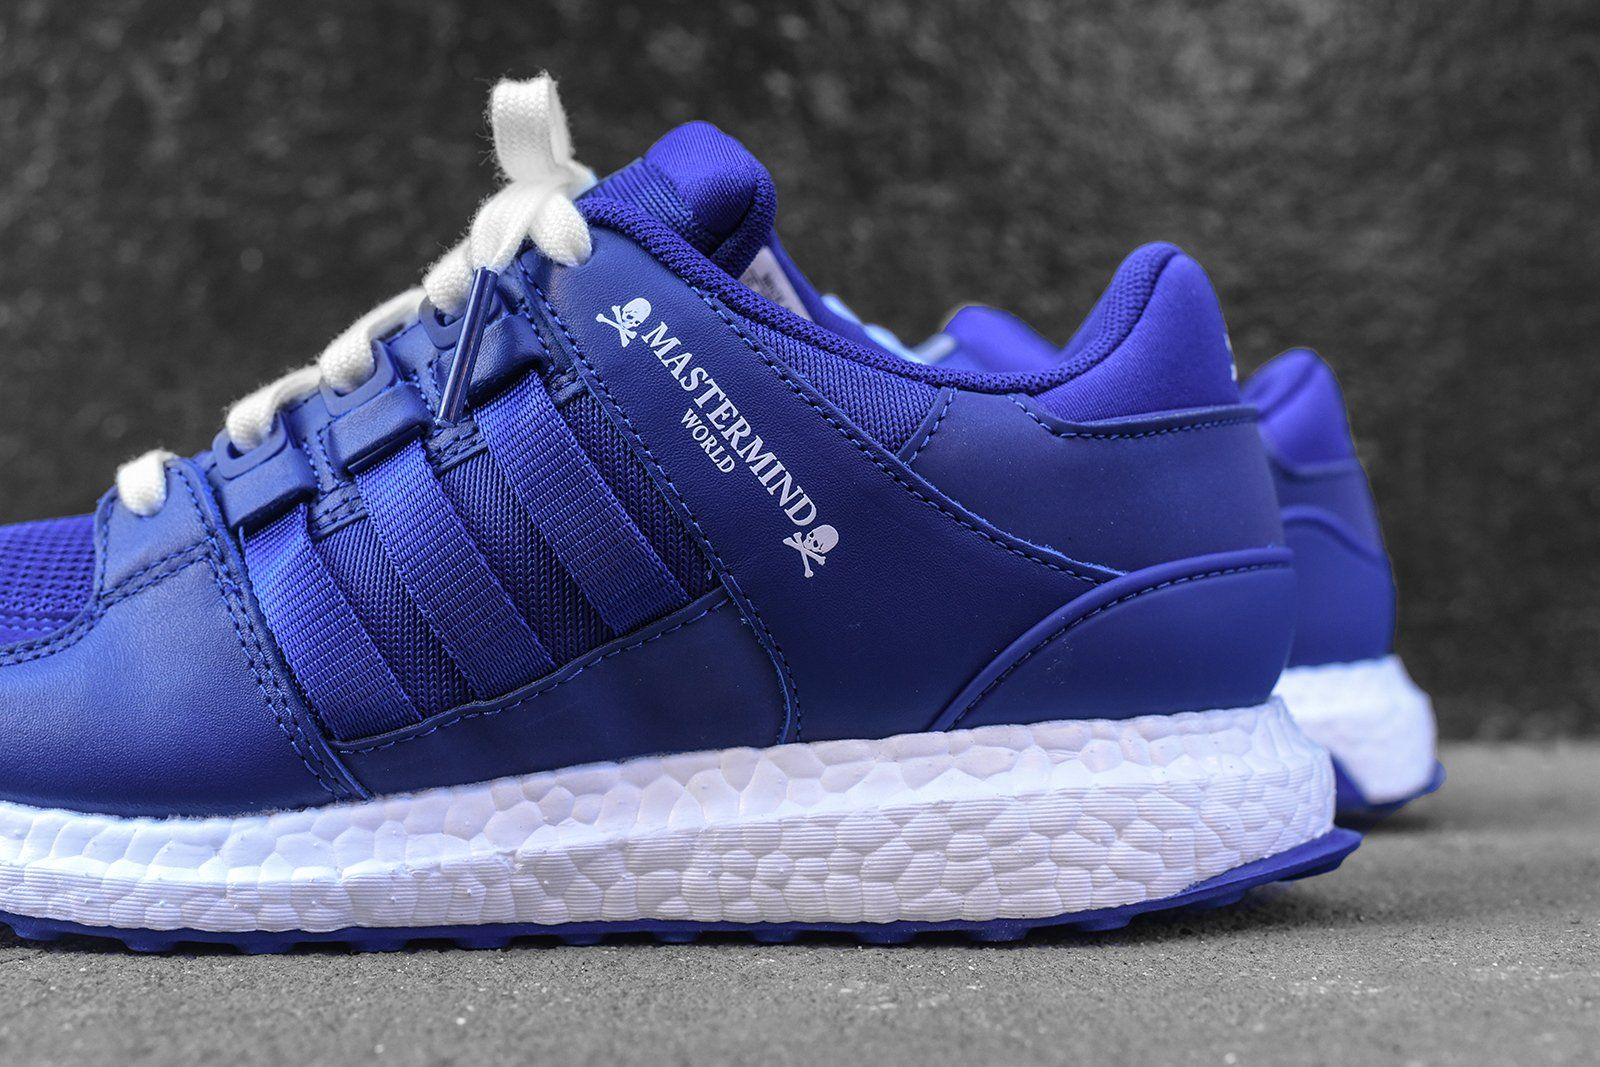 low priced caa48 2c1e5 adidas Originals x Mastermind World EQT Ultra - Mystery Ink